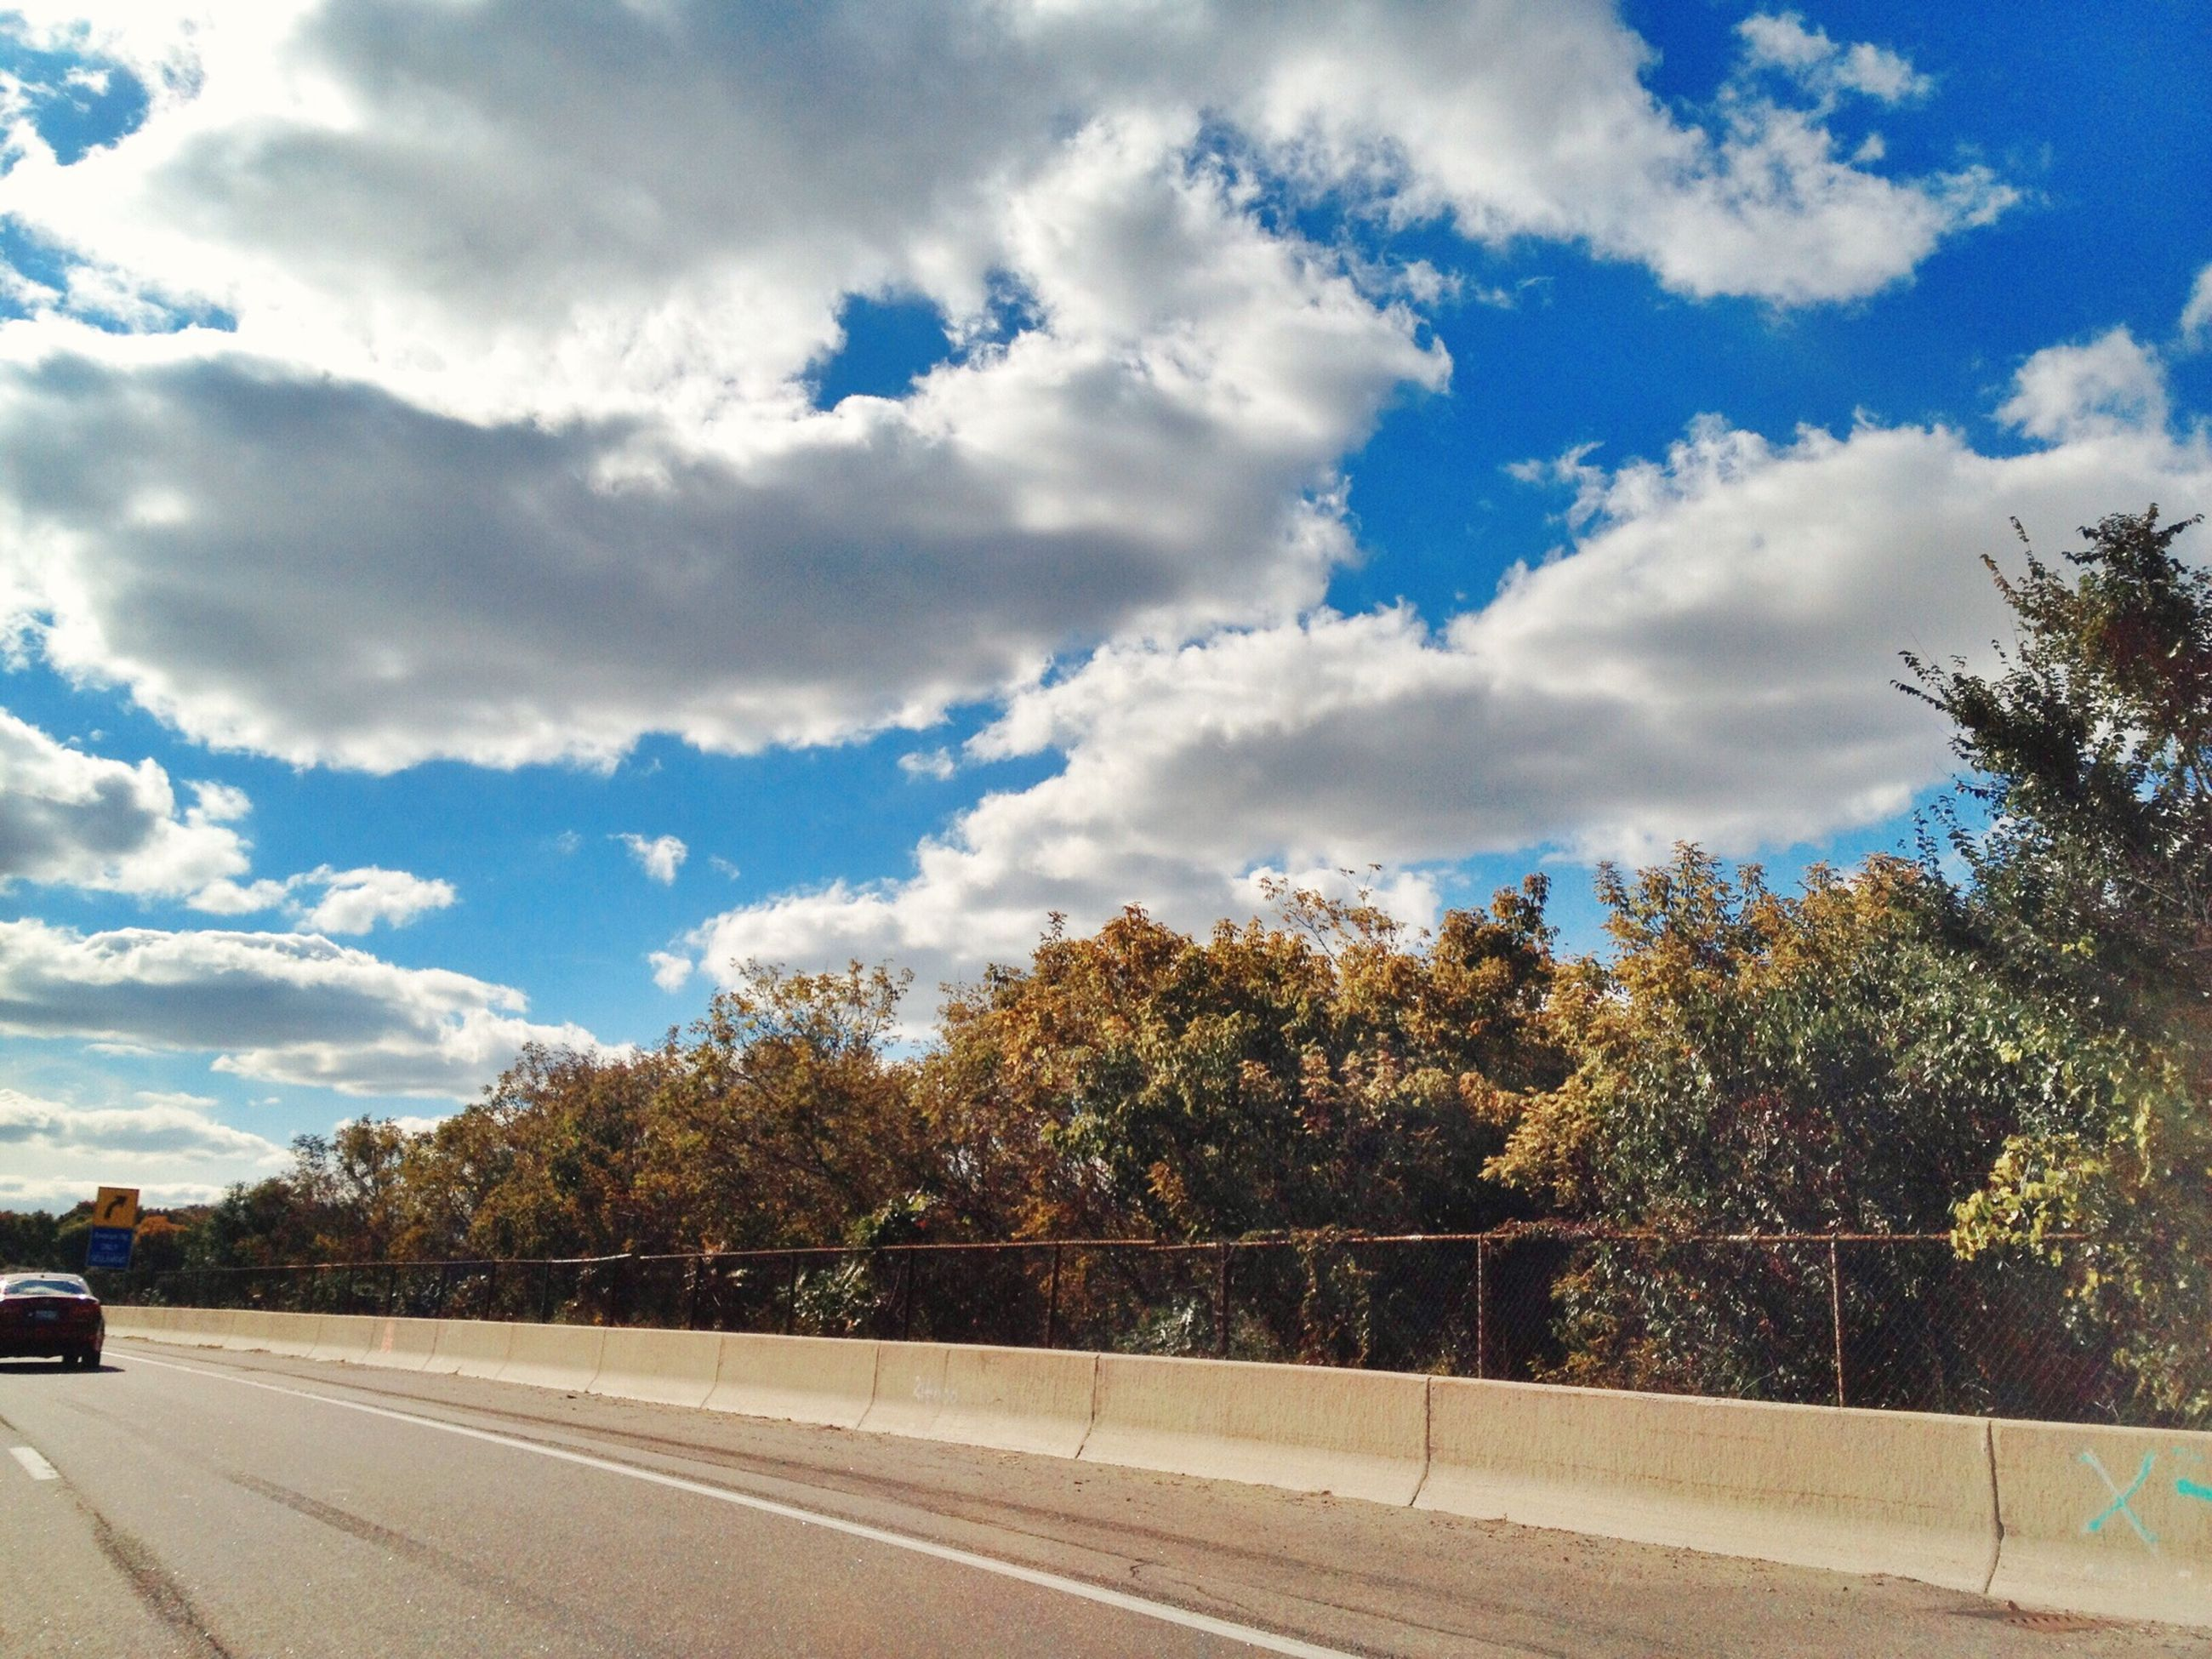 transportation, tree, road, sky, cloud - sky, road marking, the way forward, land vehicle, car, street, mode of transport, cloud, nature, growth, sunlight, day, country road, cloudy, outdoors, blue